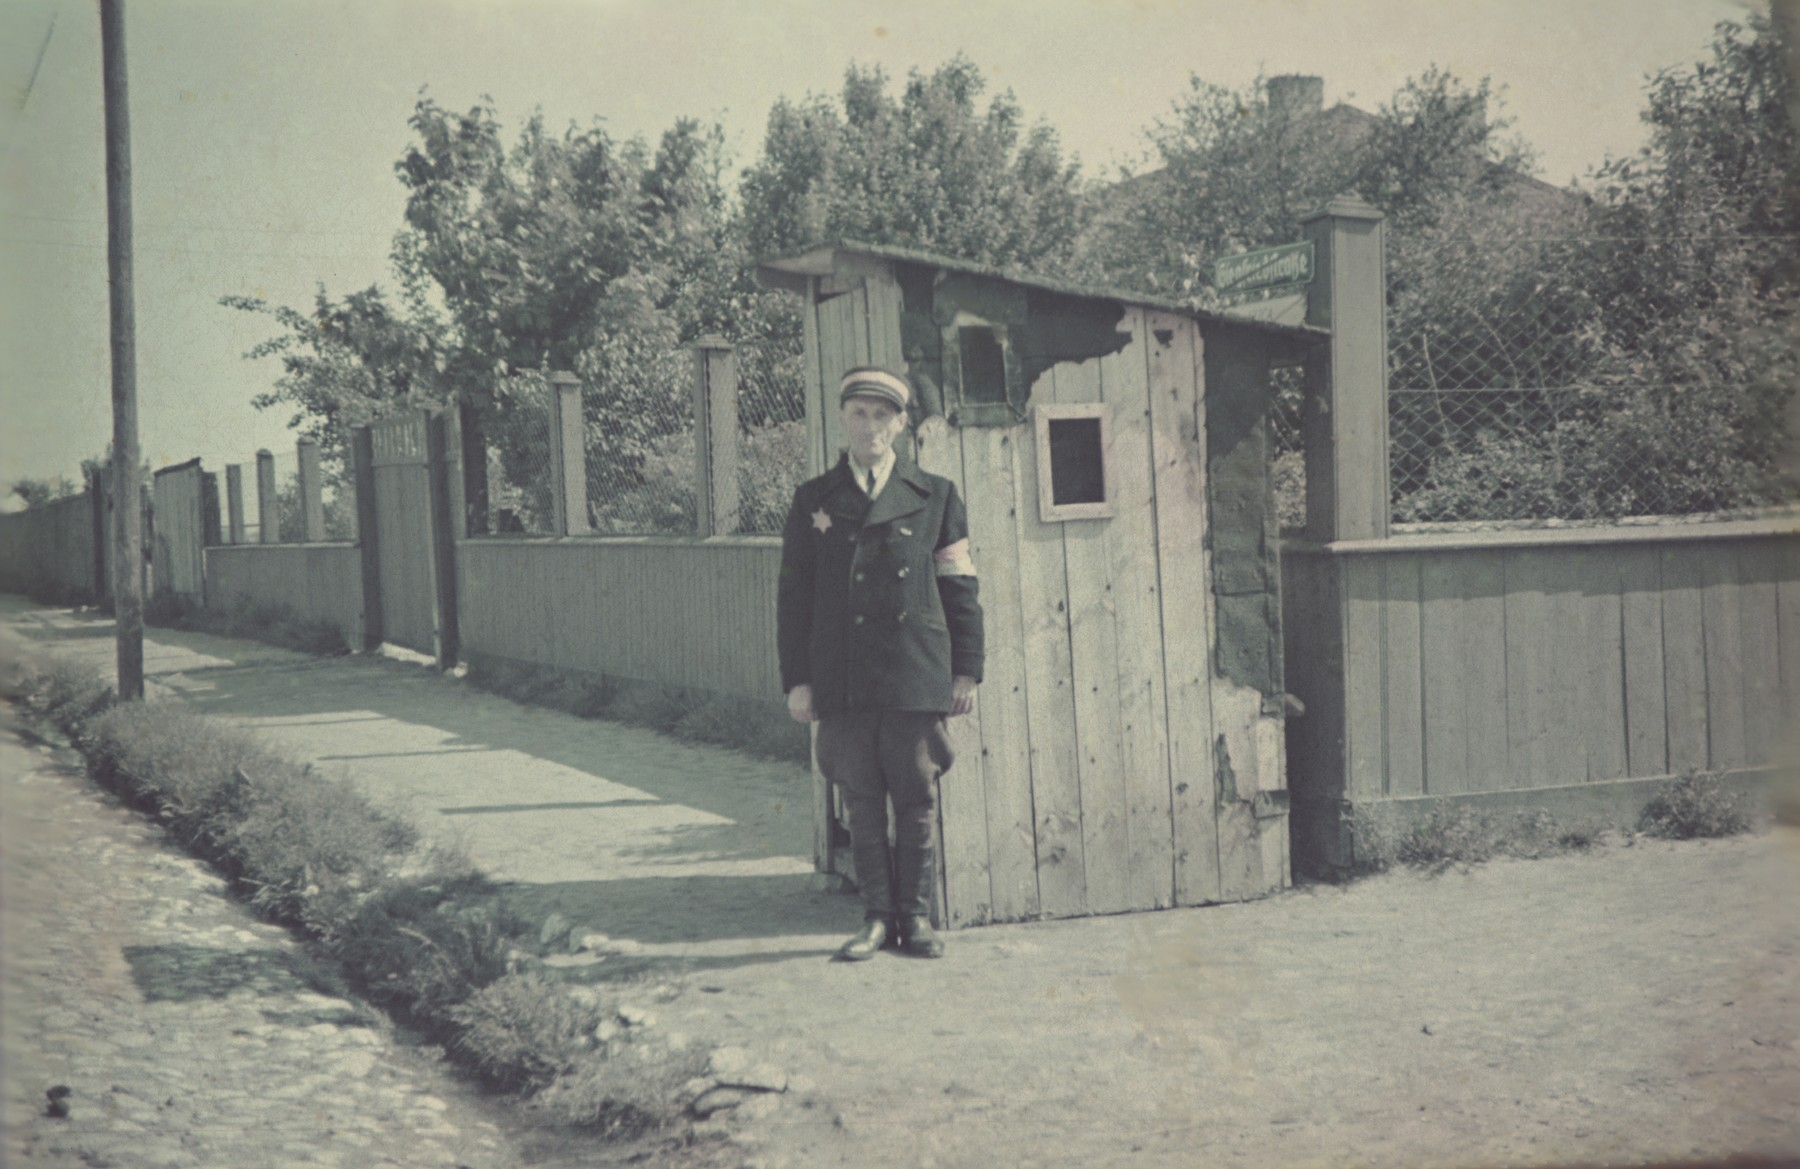 A Jewish border policeman stands by a guardhouse on a street corner in the Lodz ghetto.